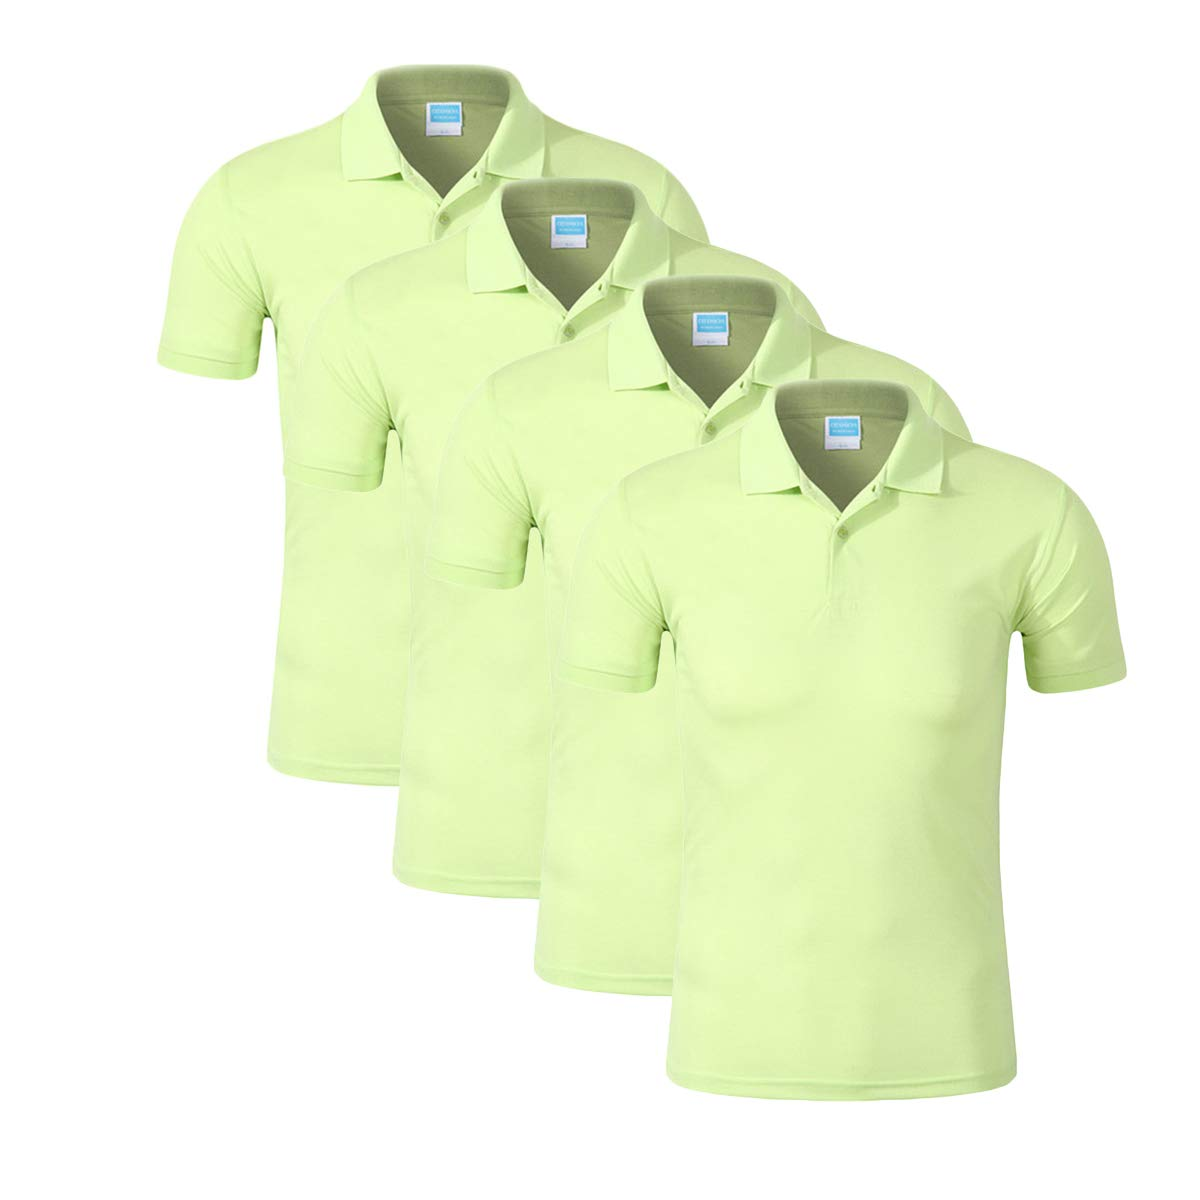 4d57f0a7 Online Cheap wholesale Averywin Womens Polo Shirts Short Sleeve 4 Pack Plus  Size Ladies Workout T Shirts Women Polos Suppliers